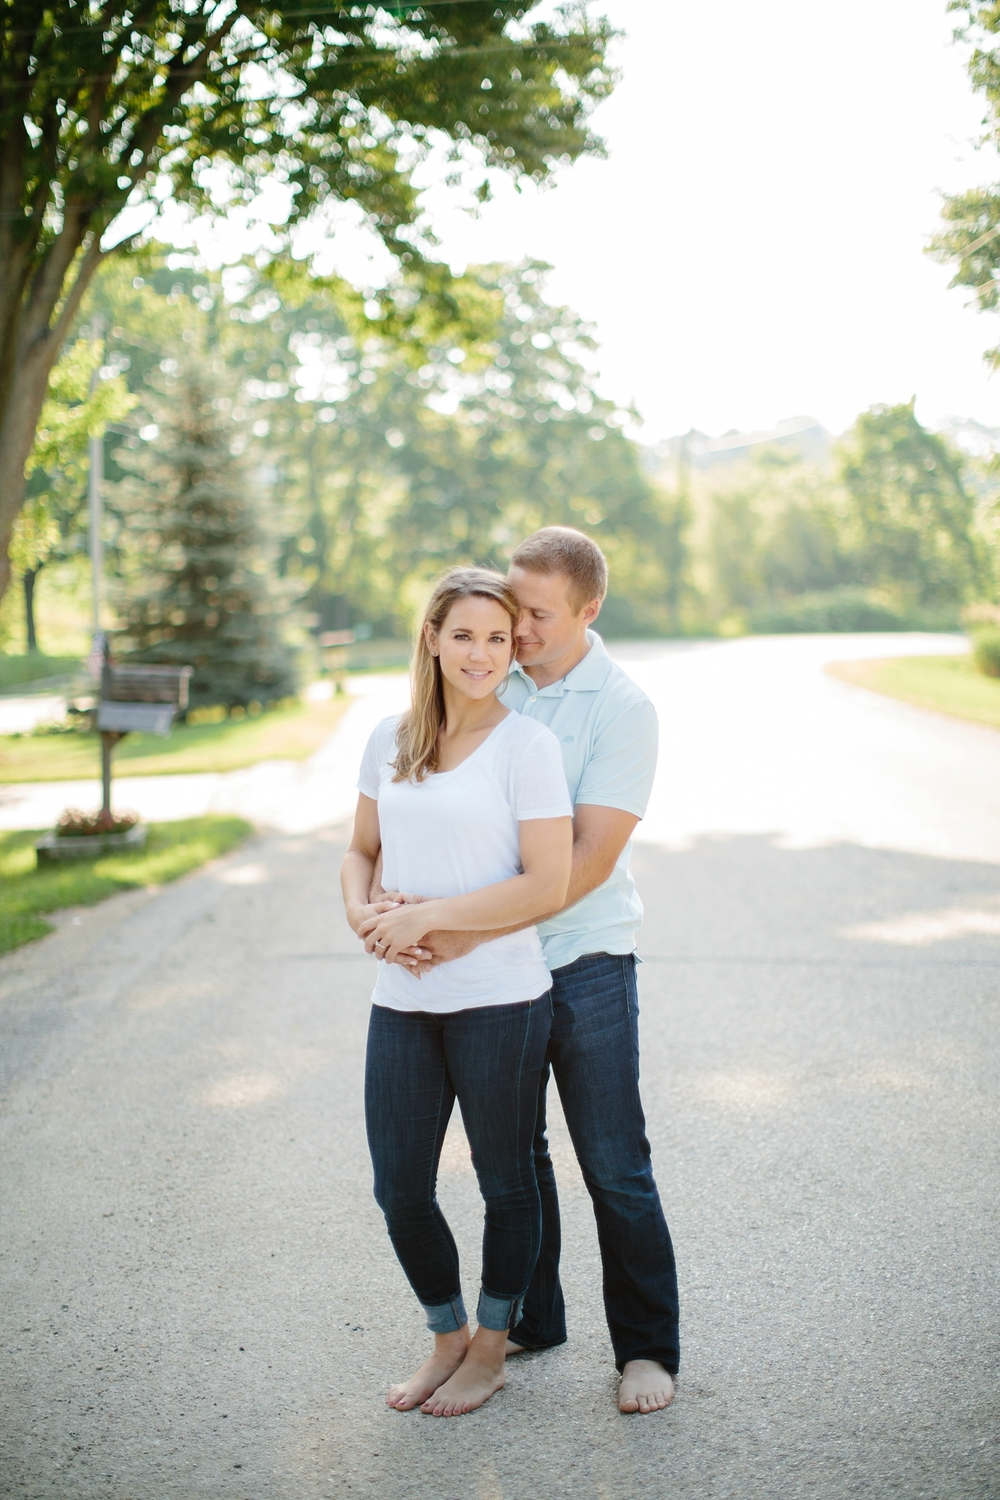 SunriseEngagementSession_0022.jpg